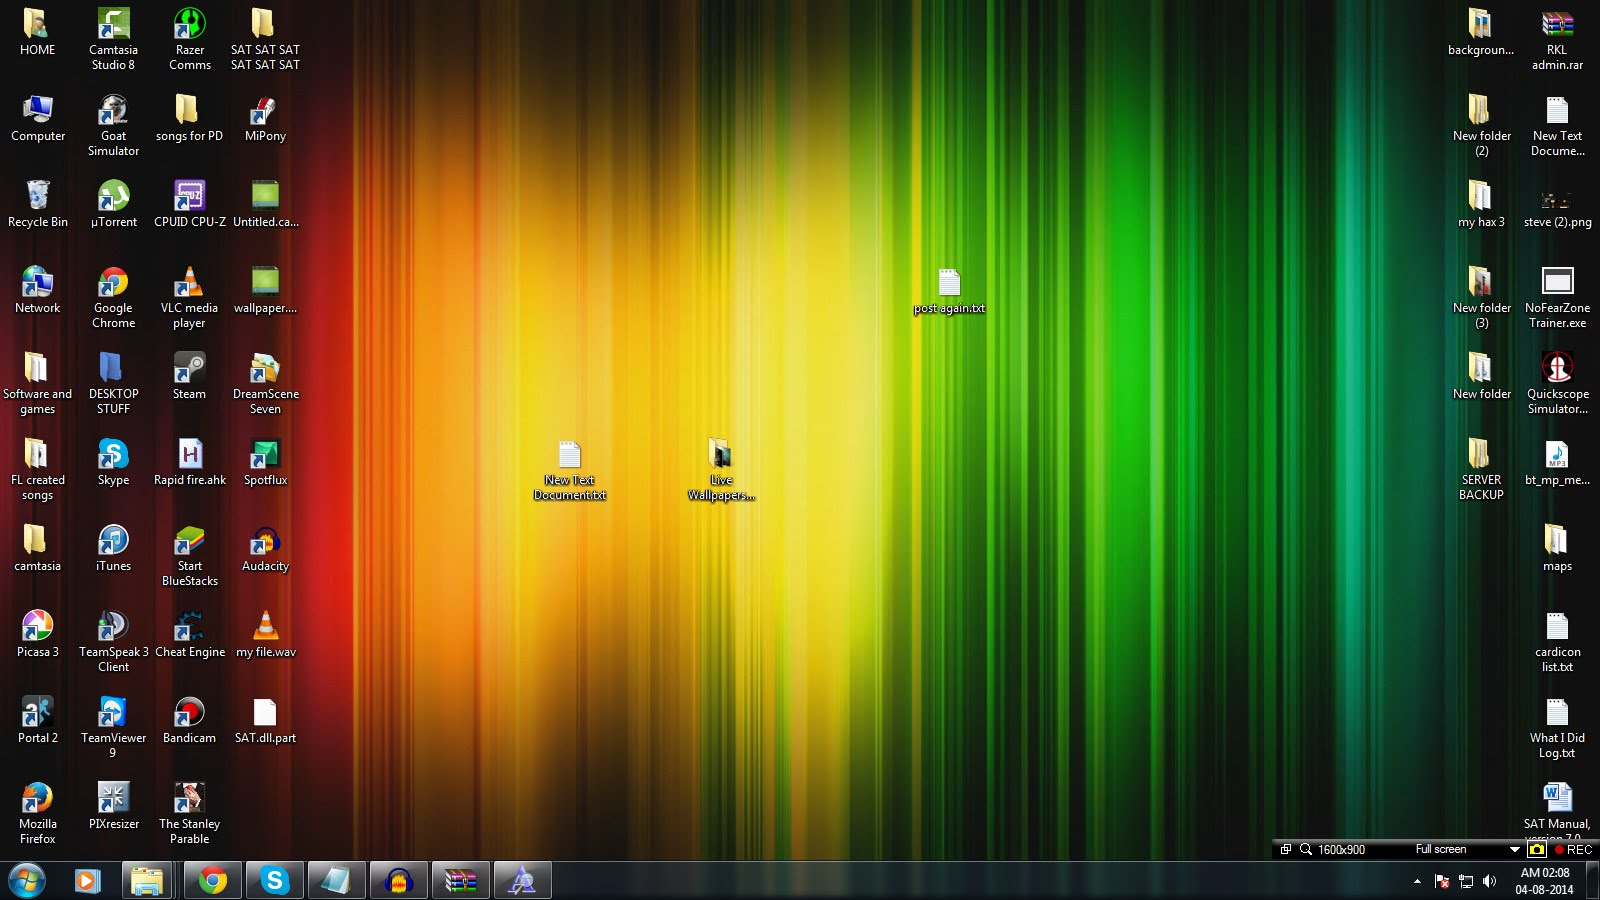 How To Get Moving Wallpapers On Windows 7